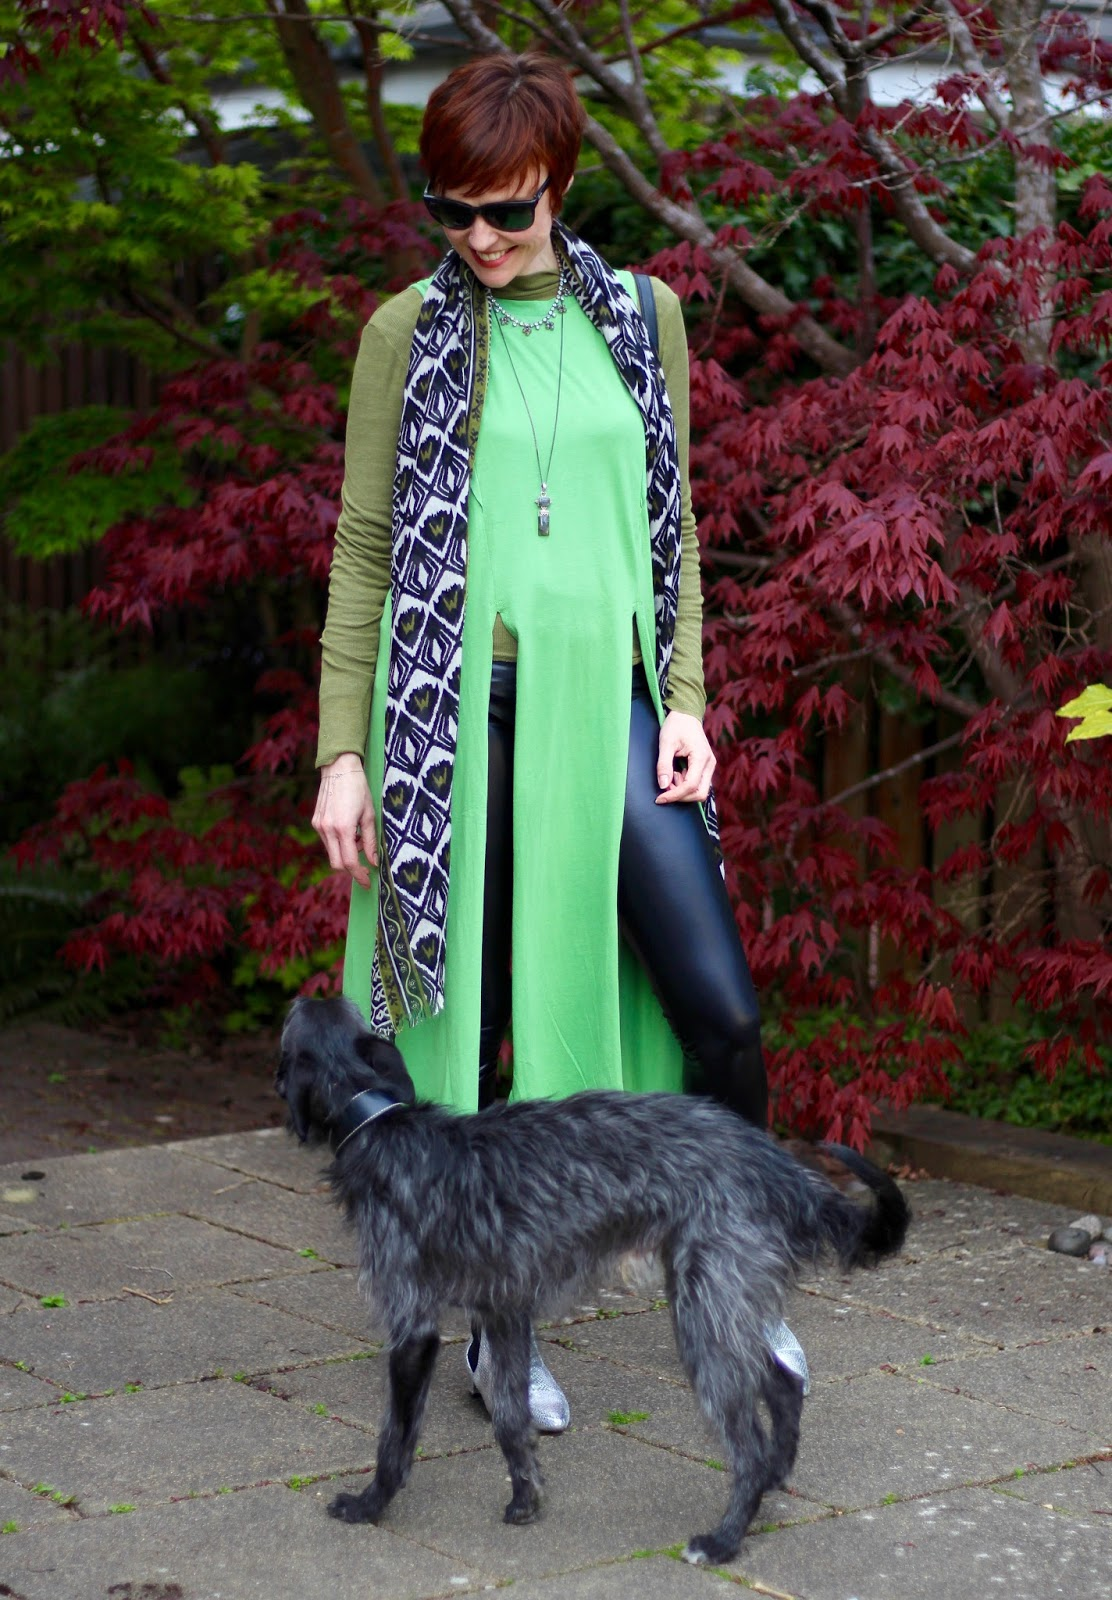 7 ways to be a Villain! | Green Tunic, Vinyl leggings, Silver Boots | Black and Green, over 40.